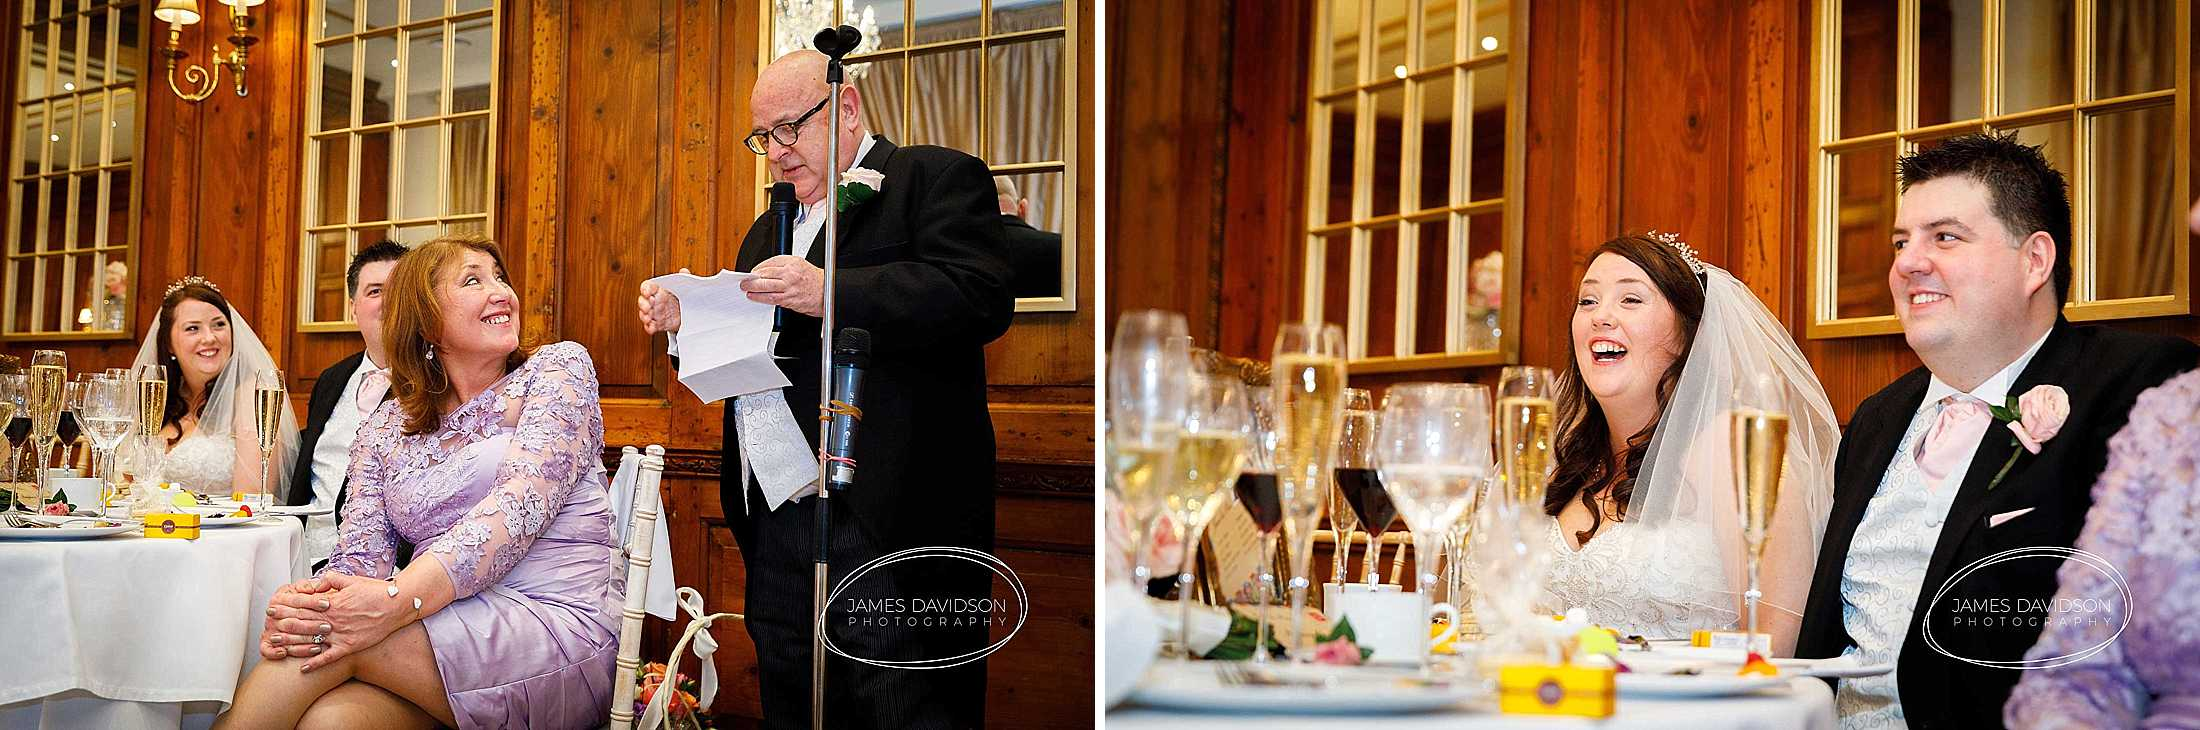 hedsor-house-wedding-photographer-105